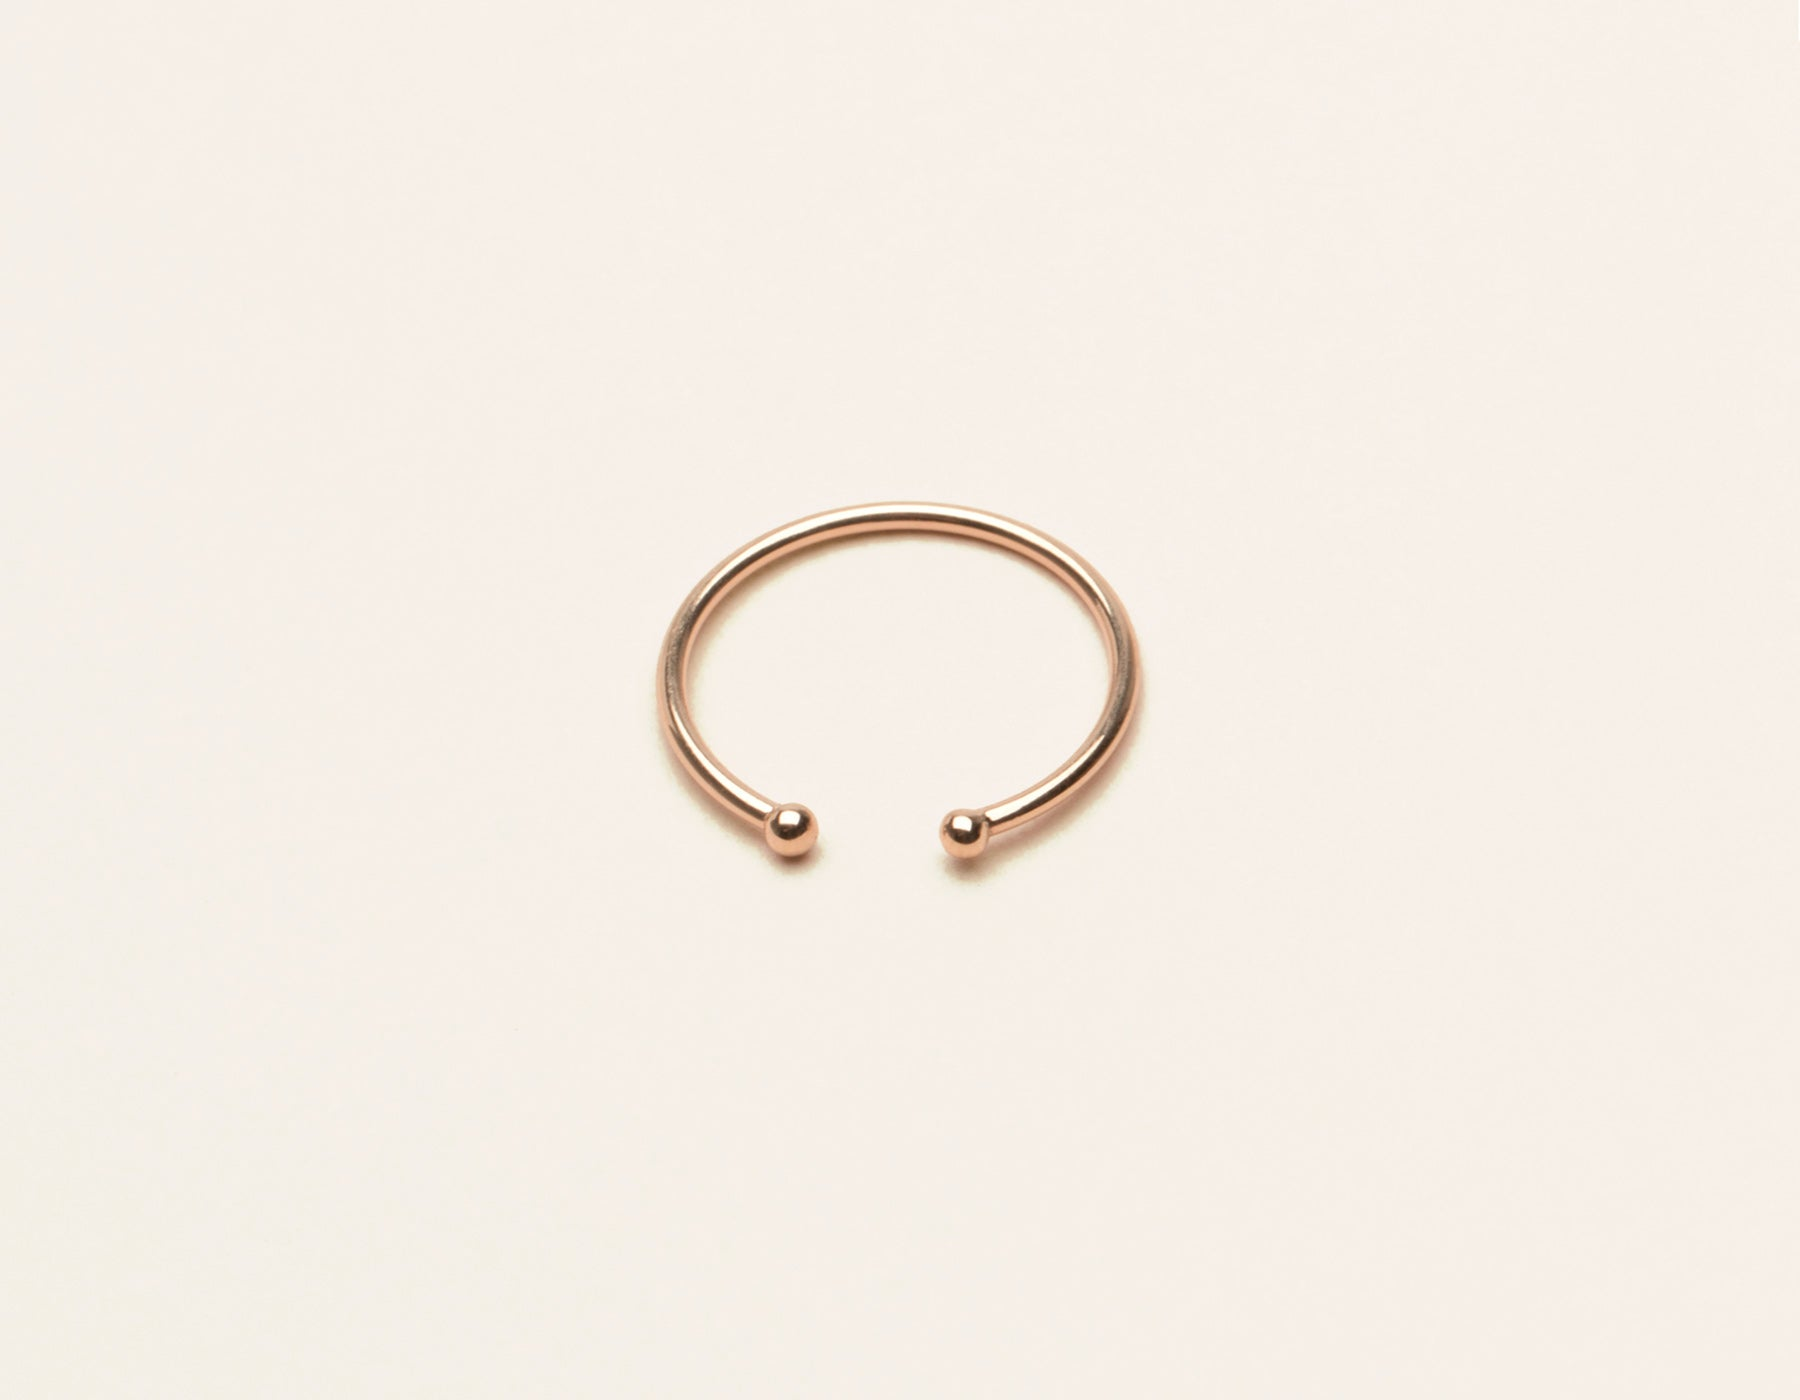 Simple modern 14k solid gold Dot Cuff Ring by Vrai and Oro minimalist jewelry, 14K Rose Gold